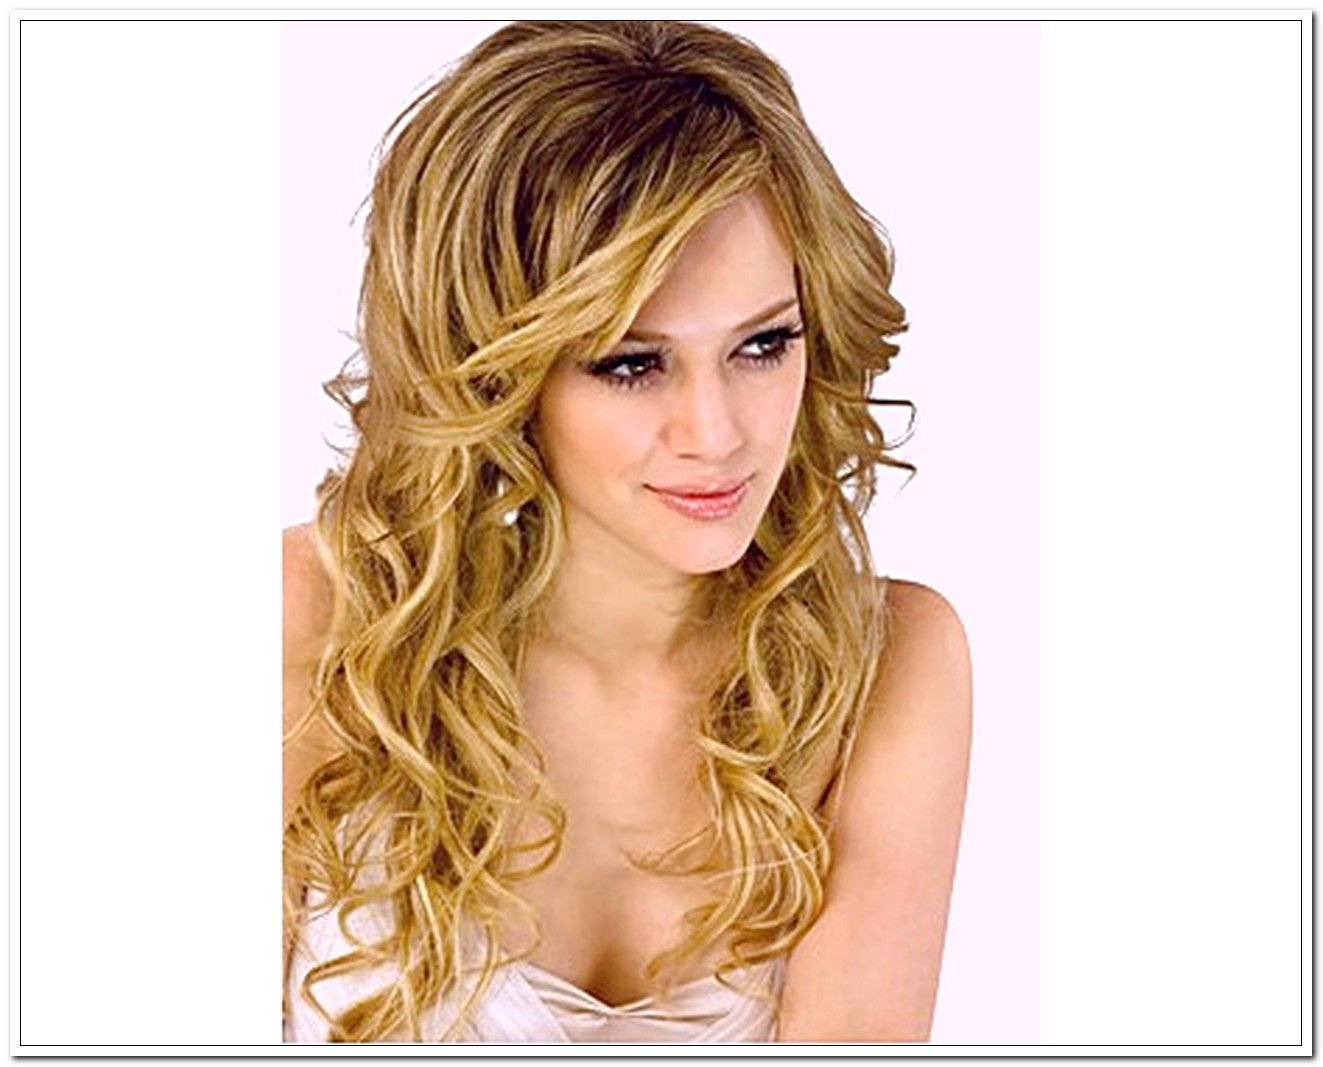 New Cool Hairstyles For Girls With Long Curly Hair Urban Ideas With Pictures